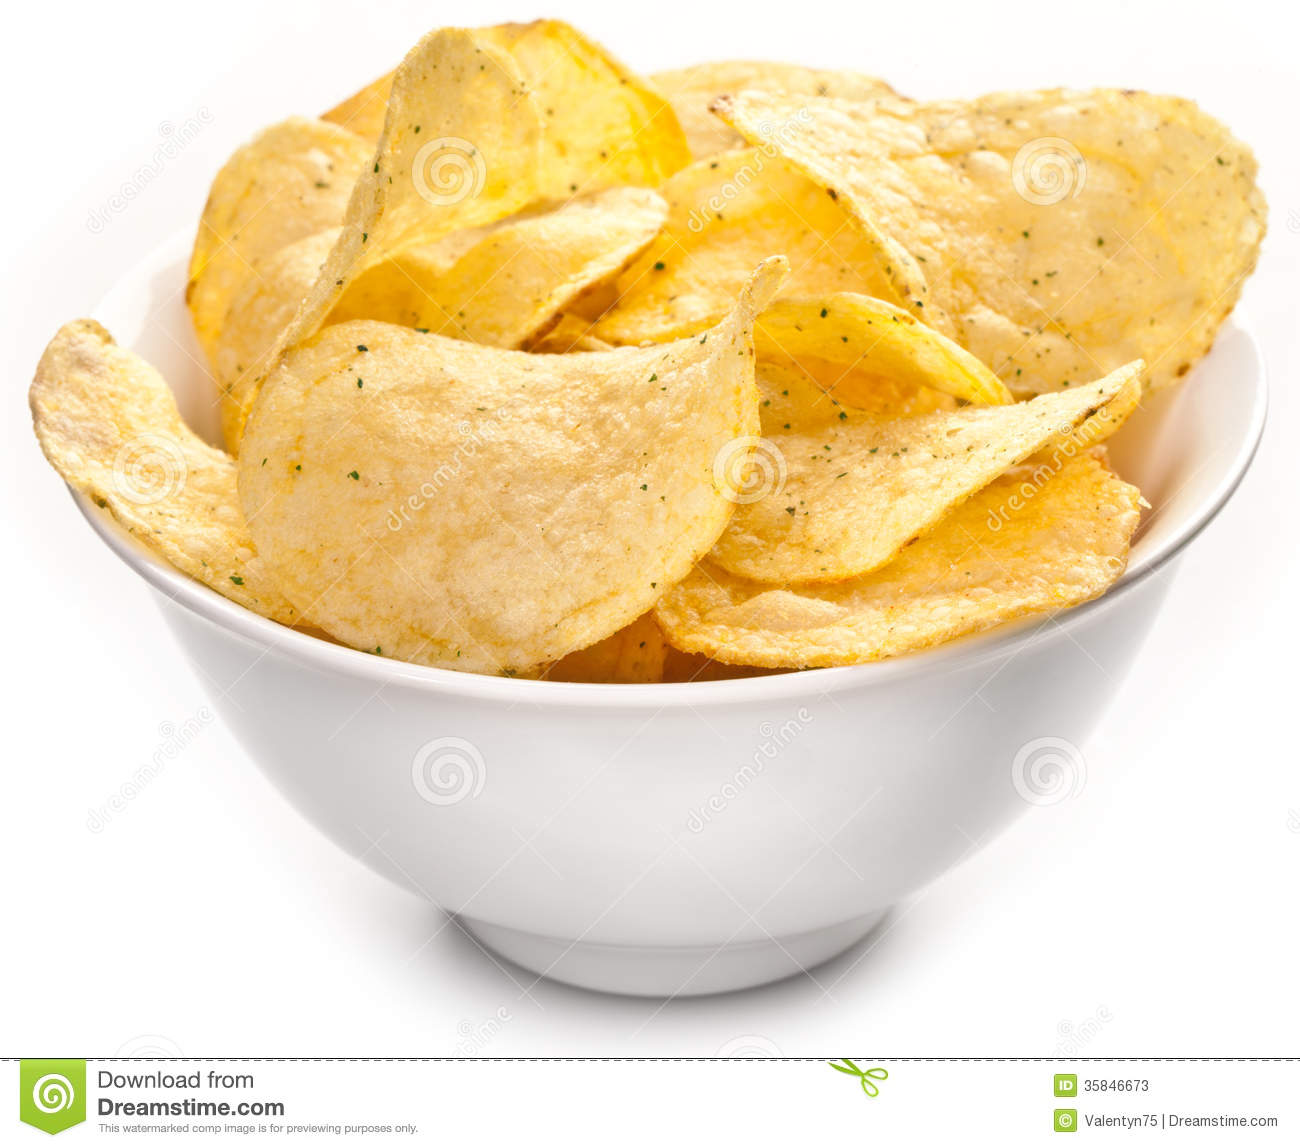 Potato Chips In A Bowl Stock Image Image Of Junk Ceramic 35846673